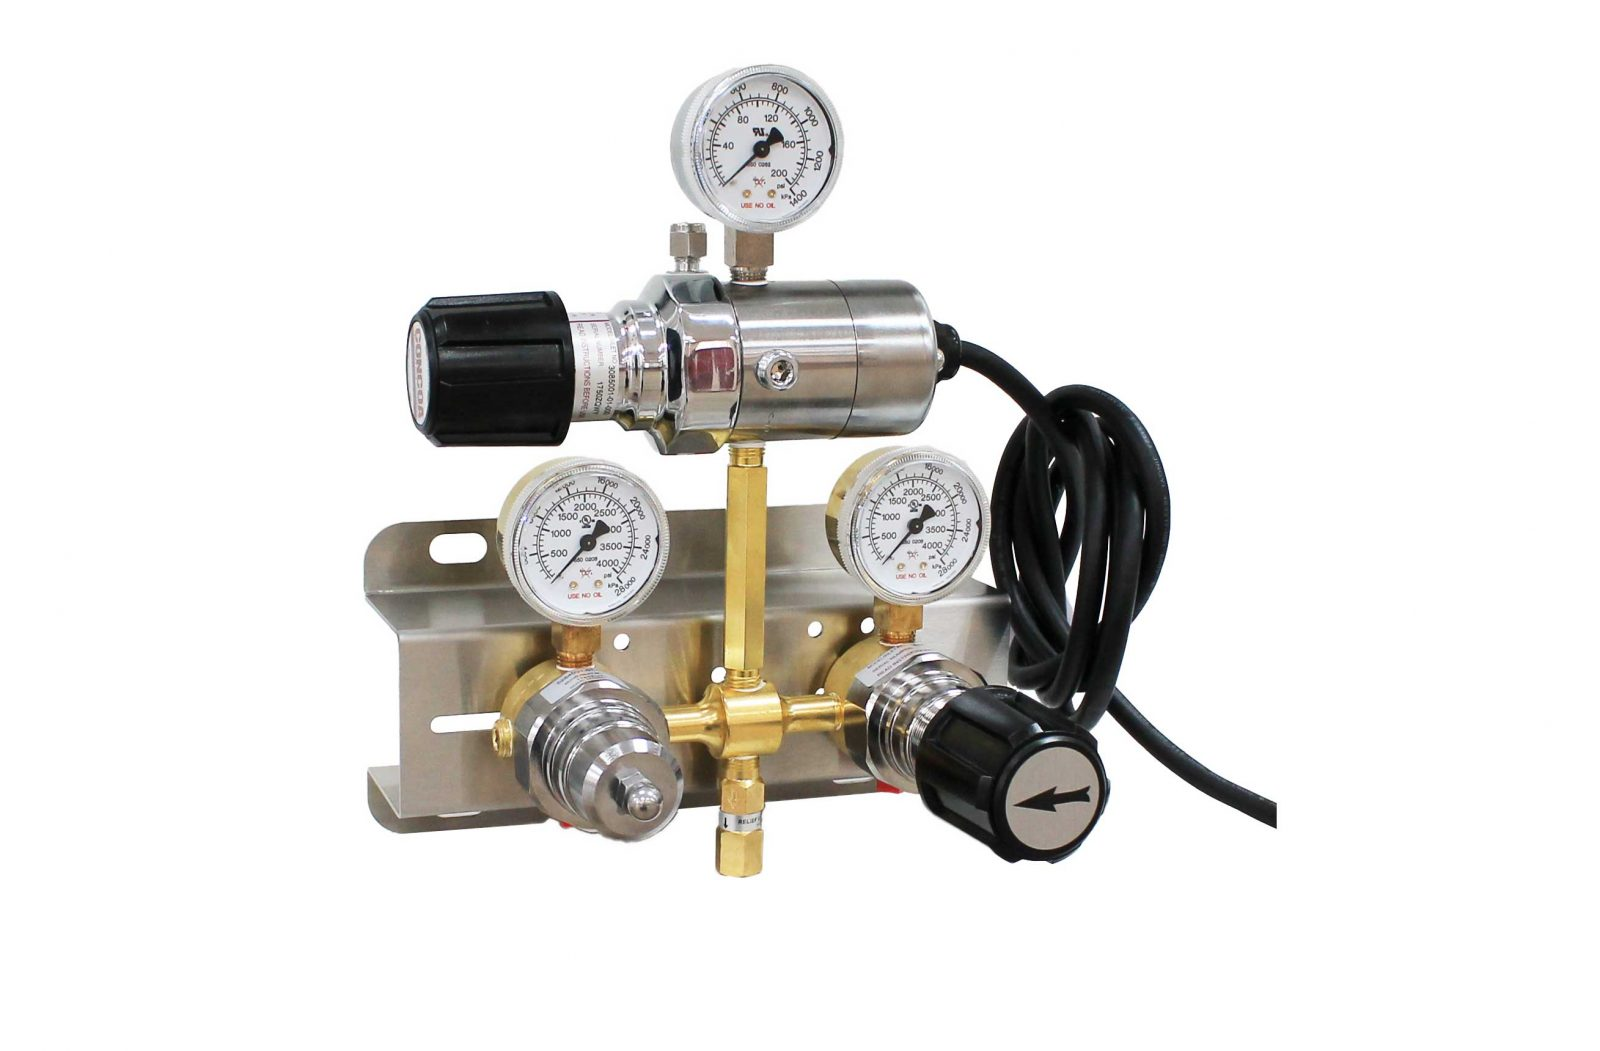 custom installation of high purity gases and equipment